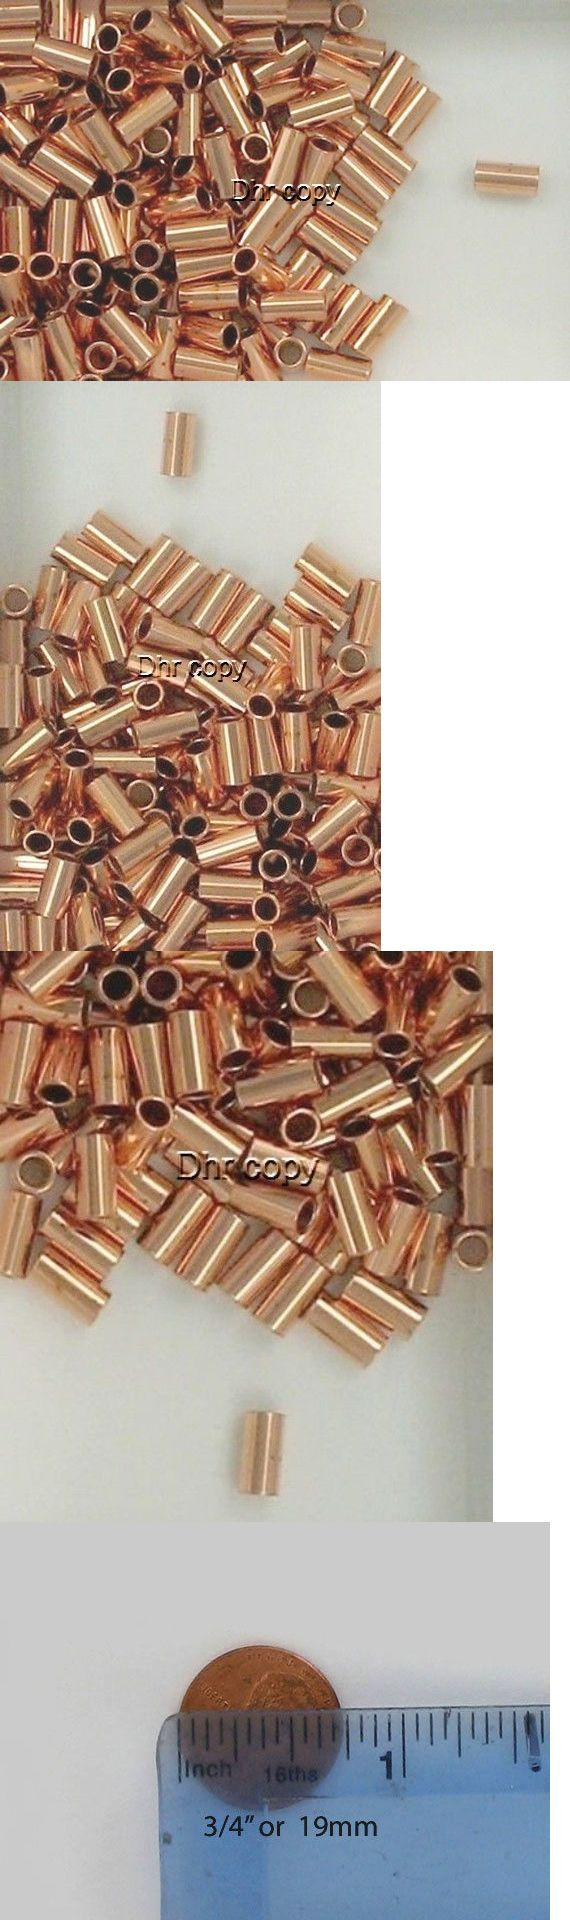 Other Loose Beads 179275: Solid Copper 3X6mm Round Tube Spacer Beads, Choice Of Lot Size And Price -> BUY IT NOW ONLY: $39.95 on eBay!